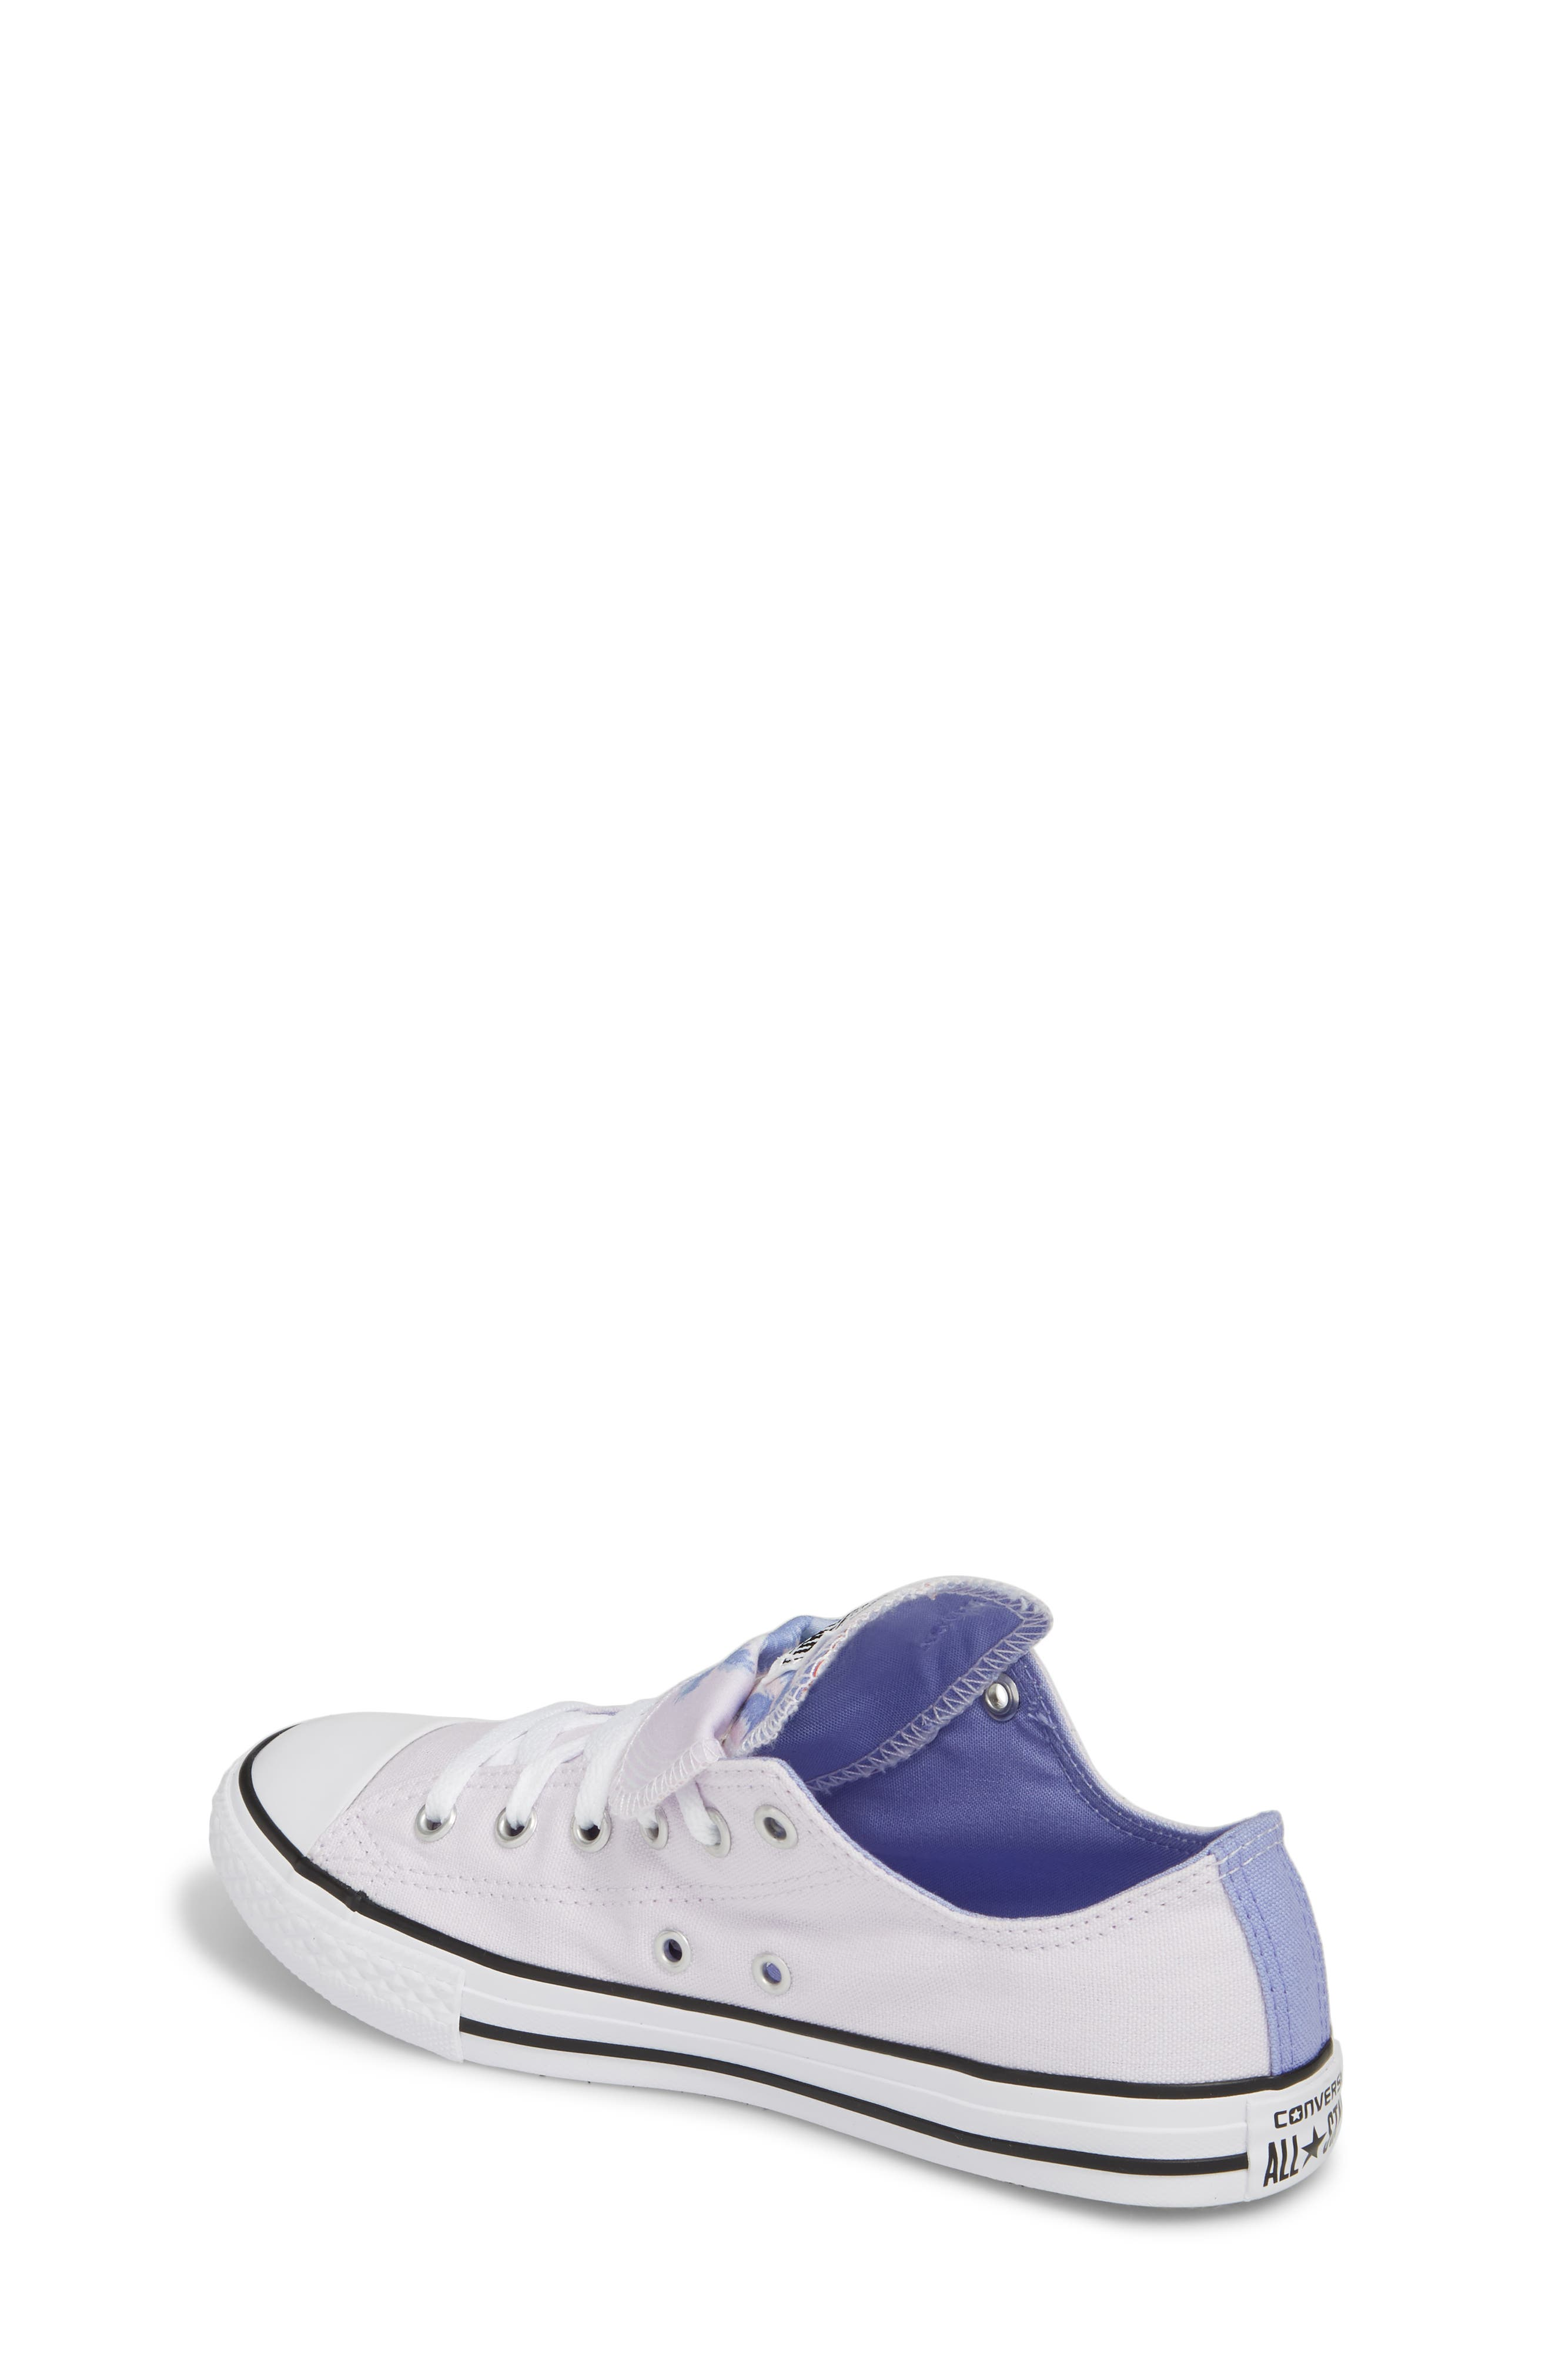 Chuck Taylor<sup>®</sup> All Star<sup>®</sup> Palm Tree Double Tongue Low Top Sneaker,                             Alternate thumbnail 2, color,                             551